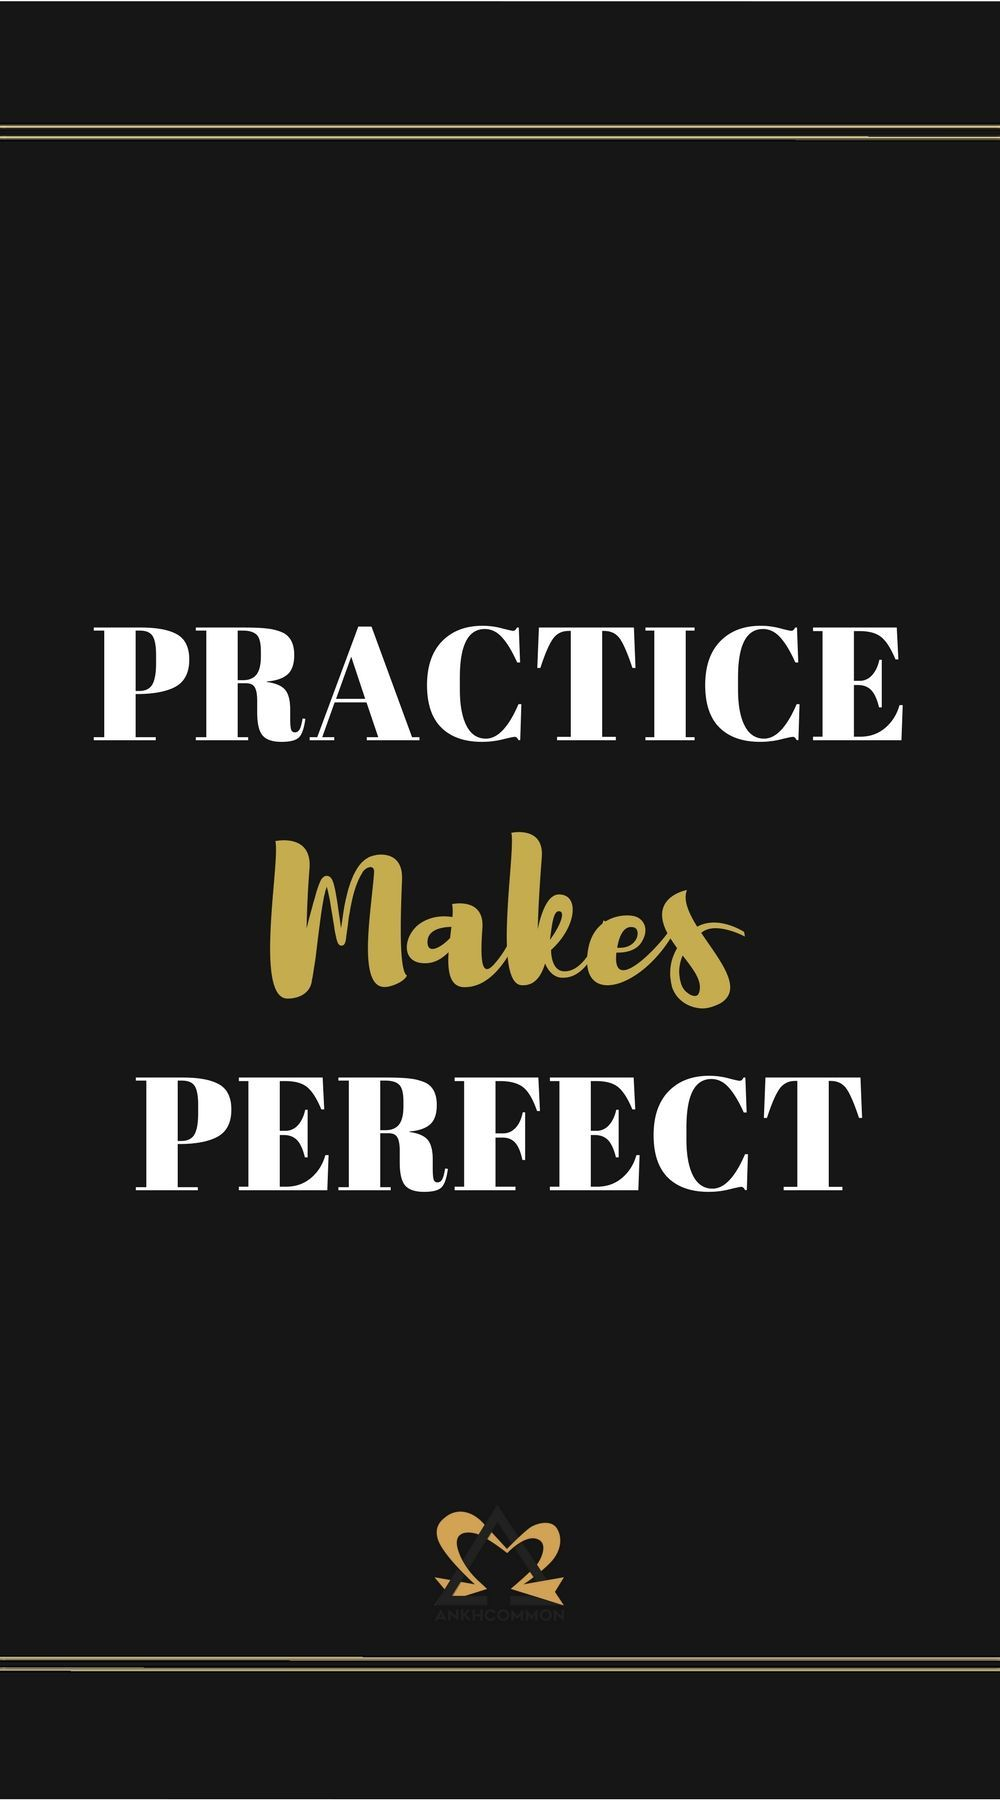 Practice Makes Perfect Is Such A Bummer Ankhcommon Blog